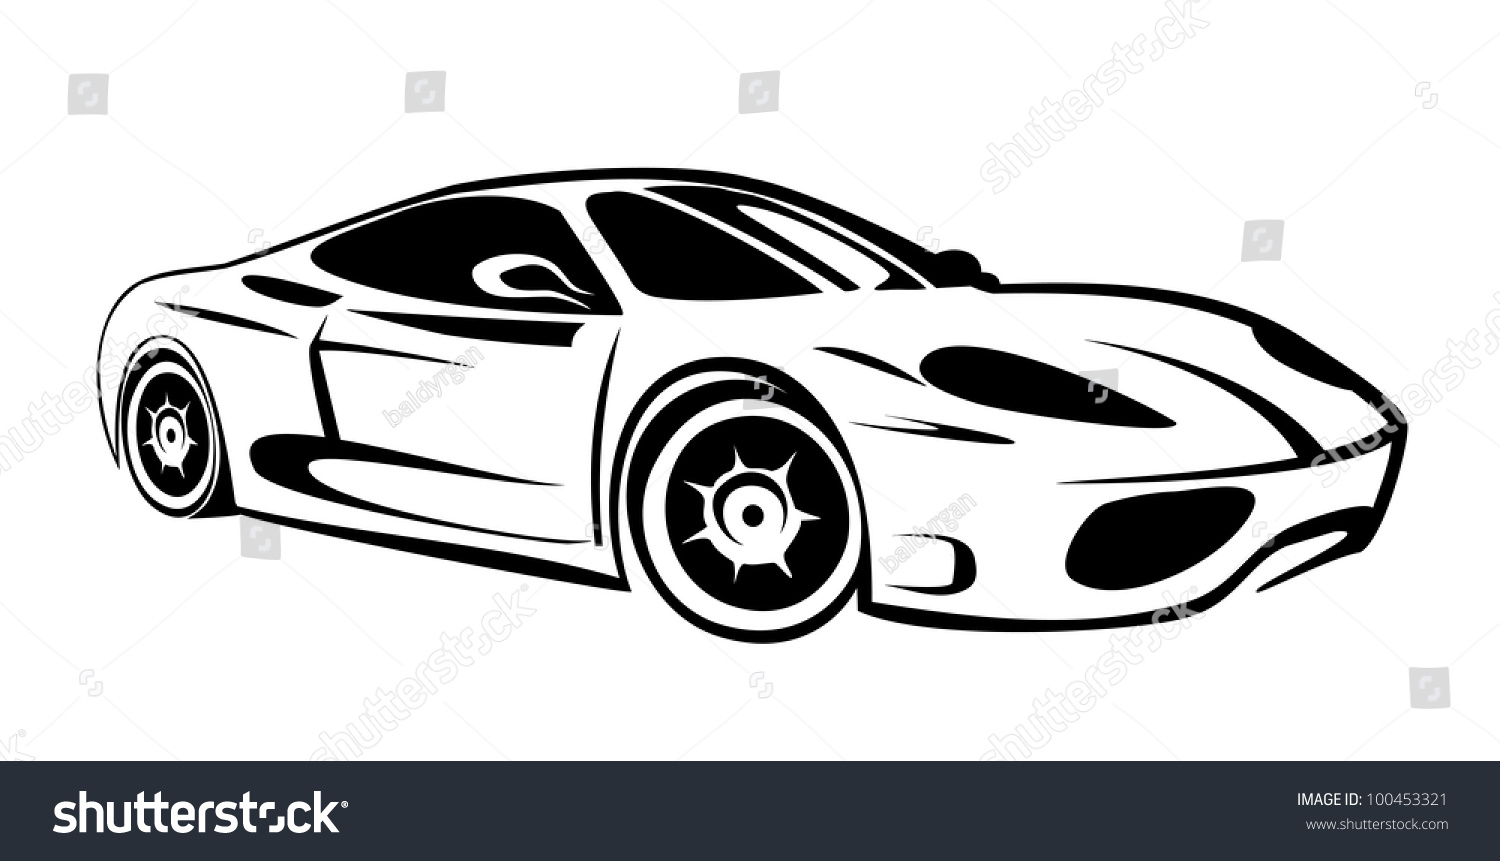 Royalty Free Silhouette Of Sport Car For Racing 100453321 Stock